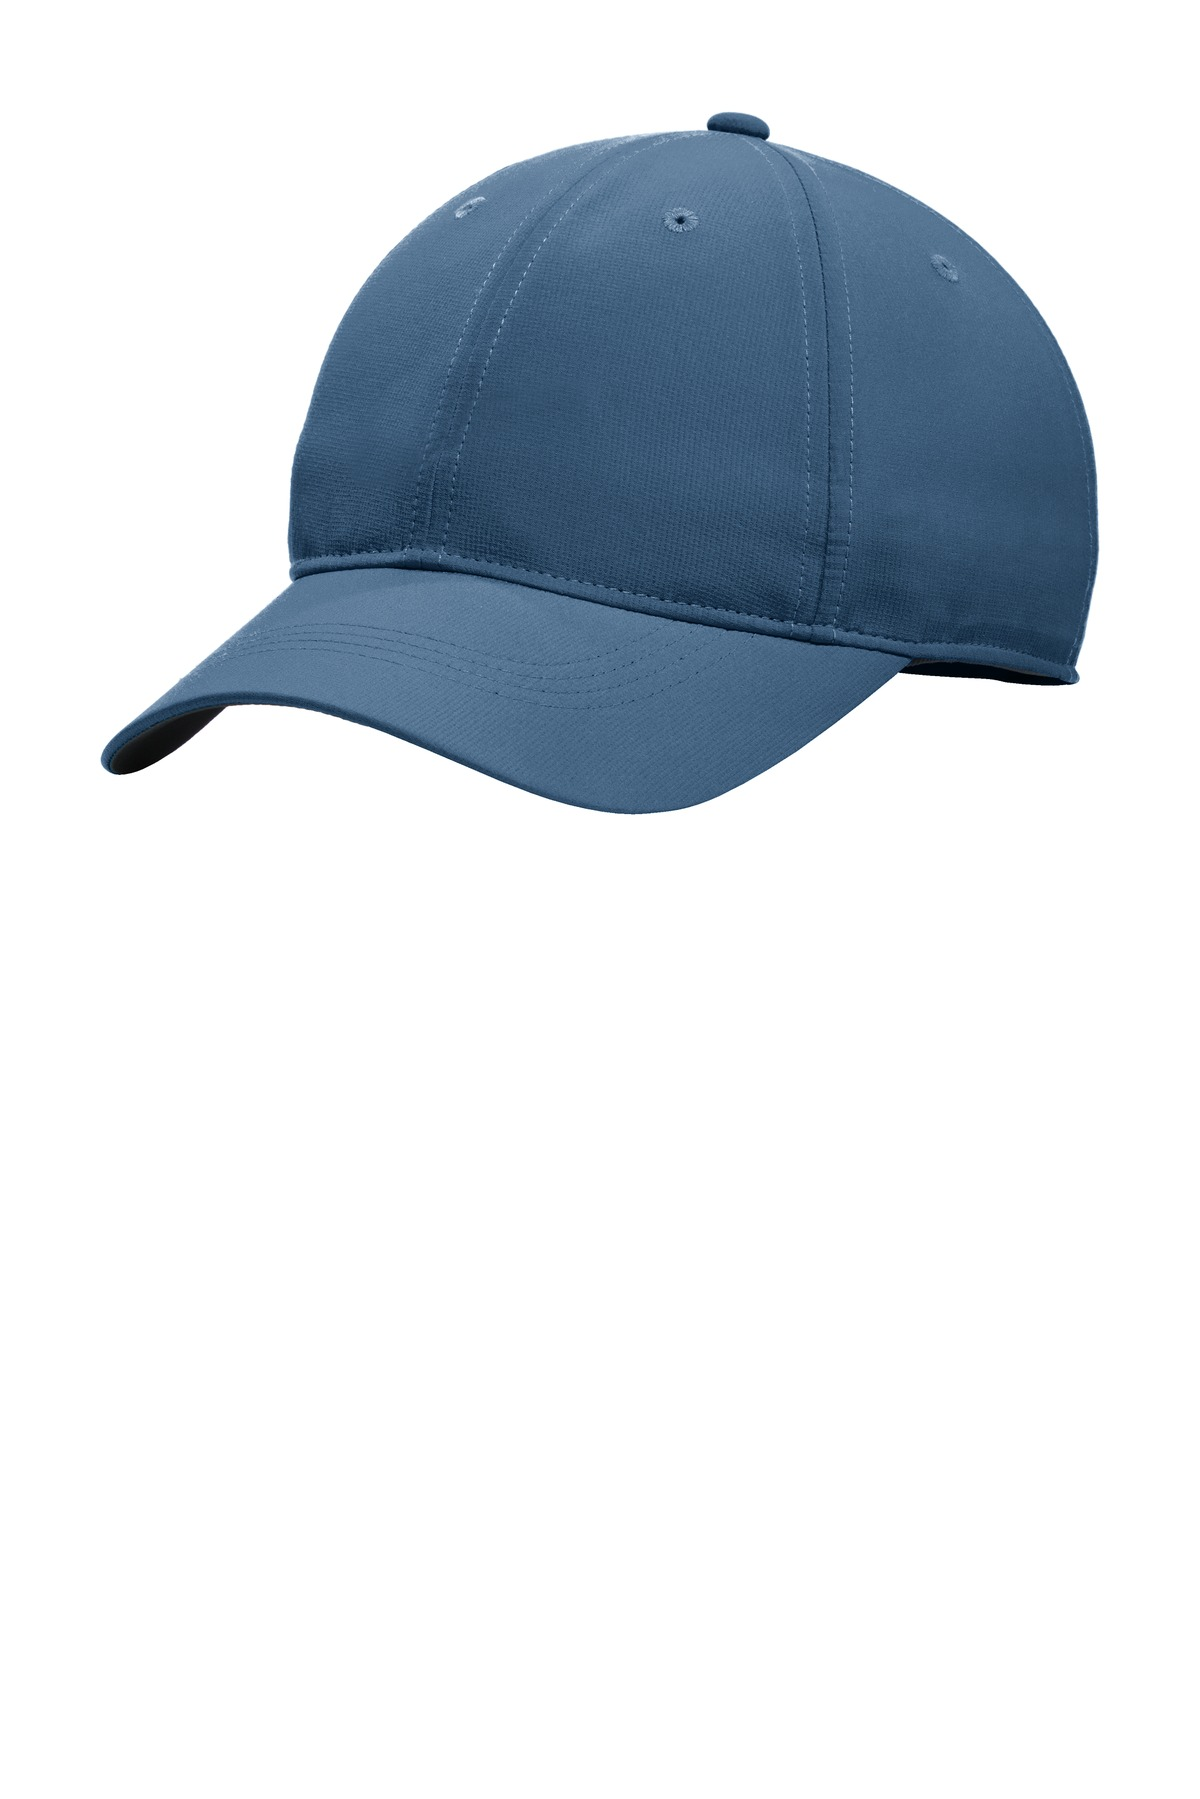 Nike Dri-FIT Tech Cap. NKAA1859